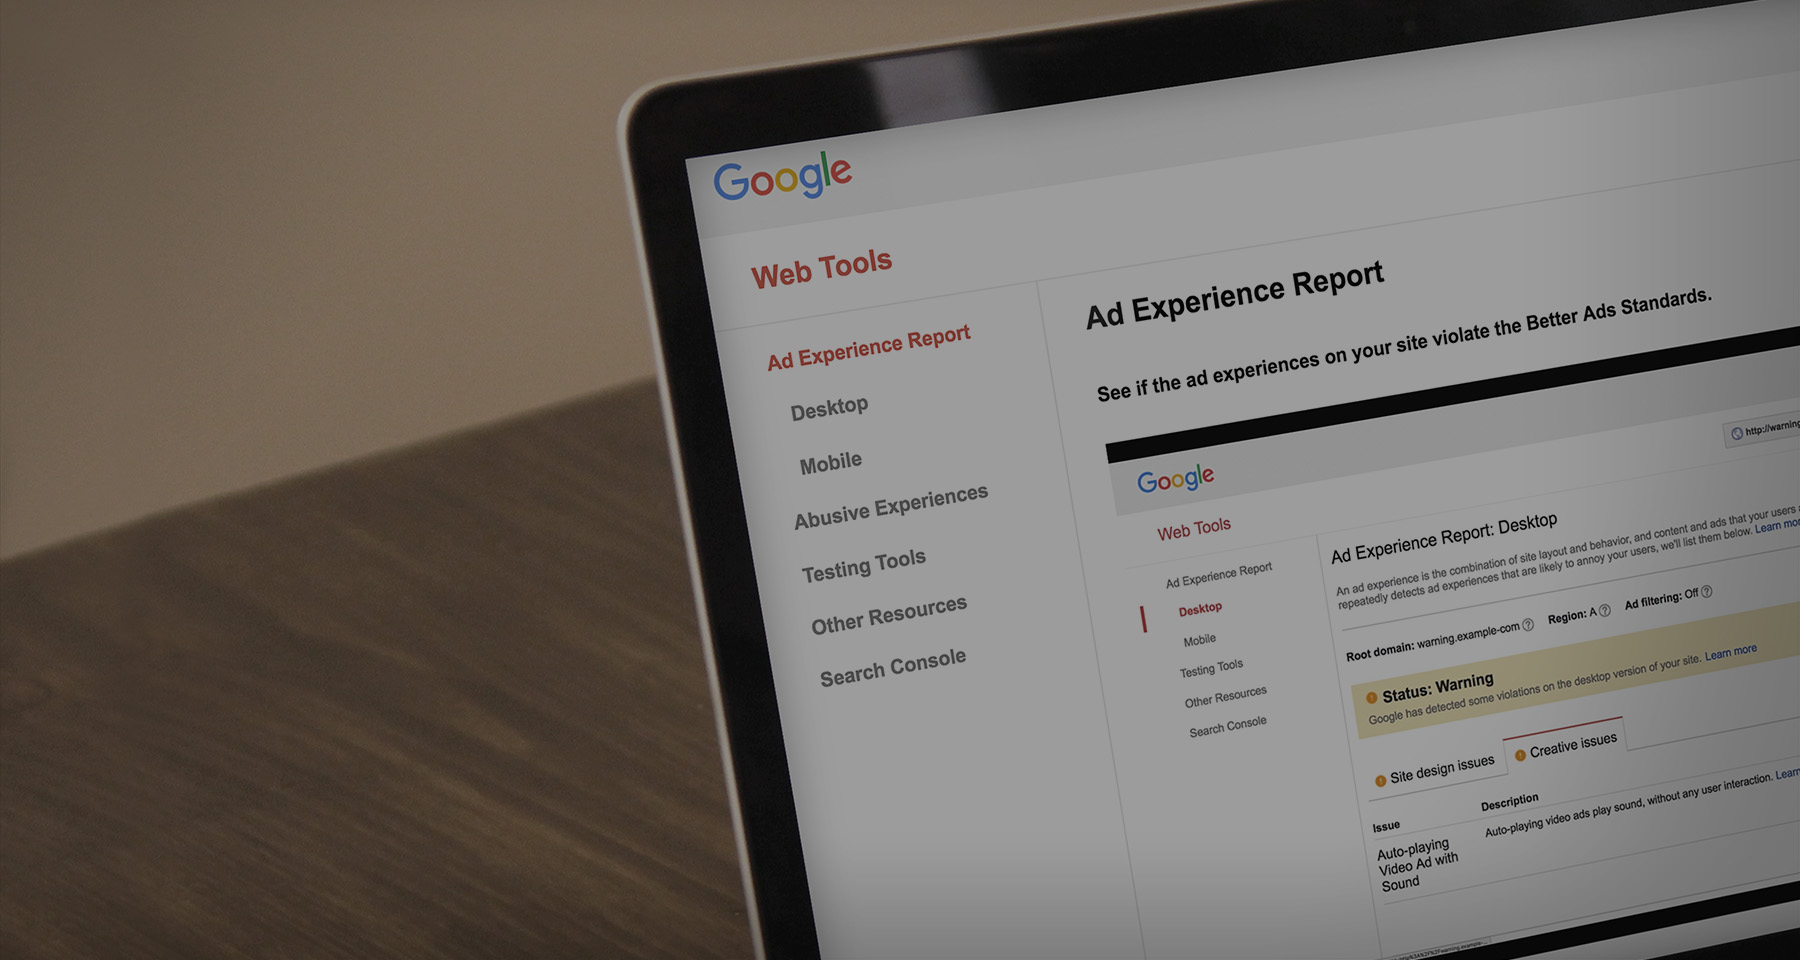 Upcoming INMA Webinar: Google initiatives to support better advertising standards